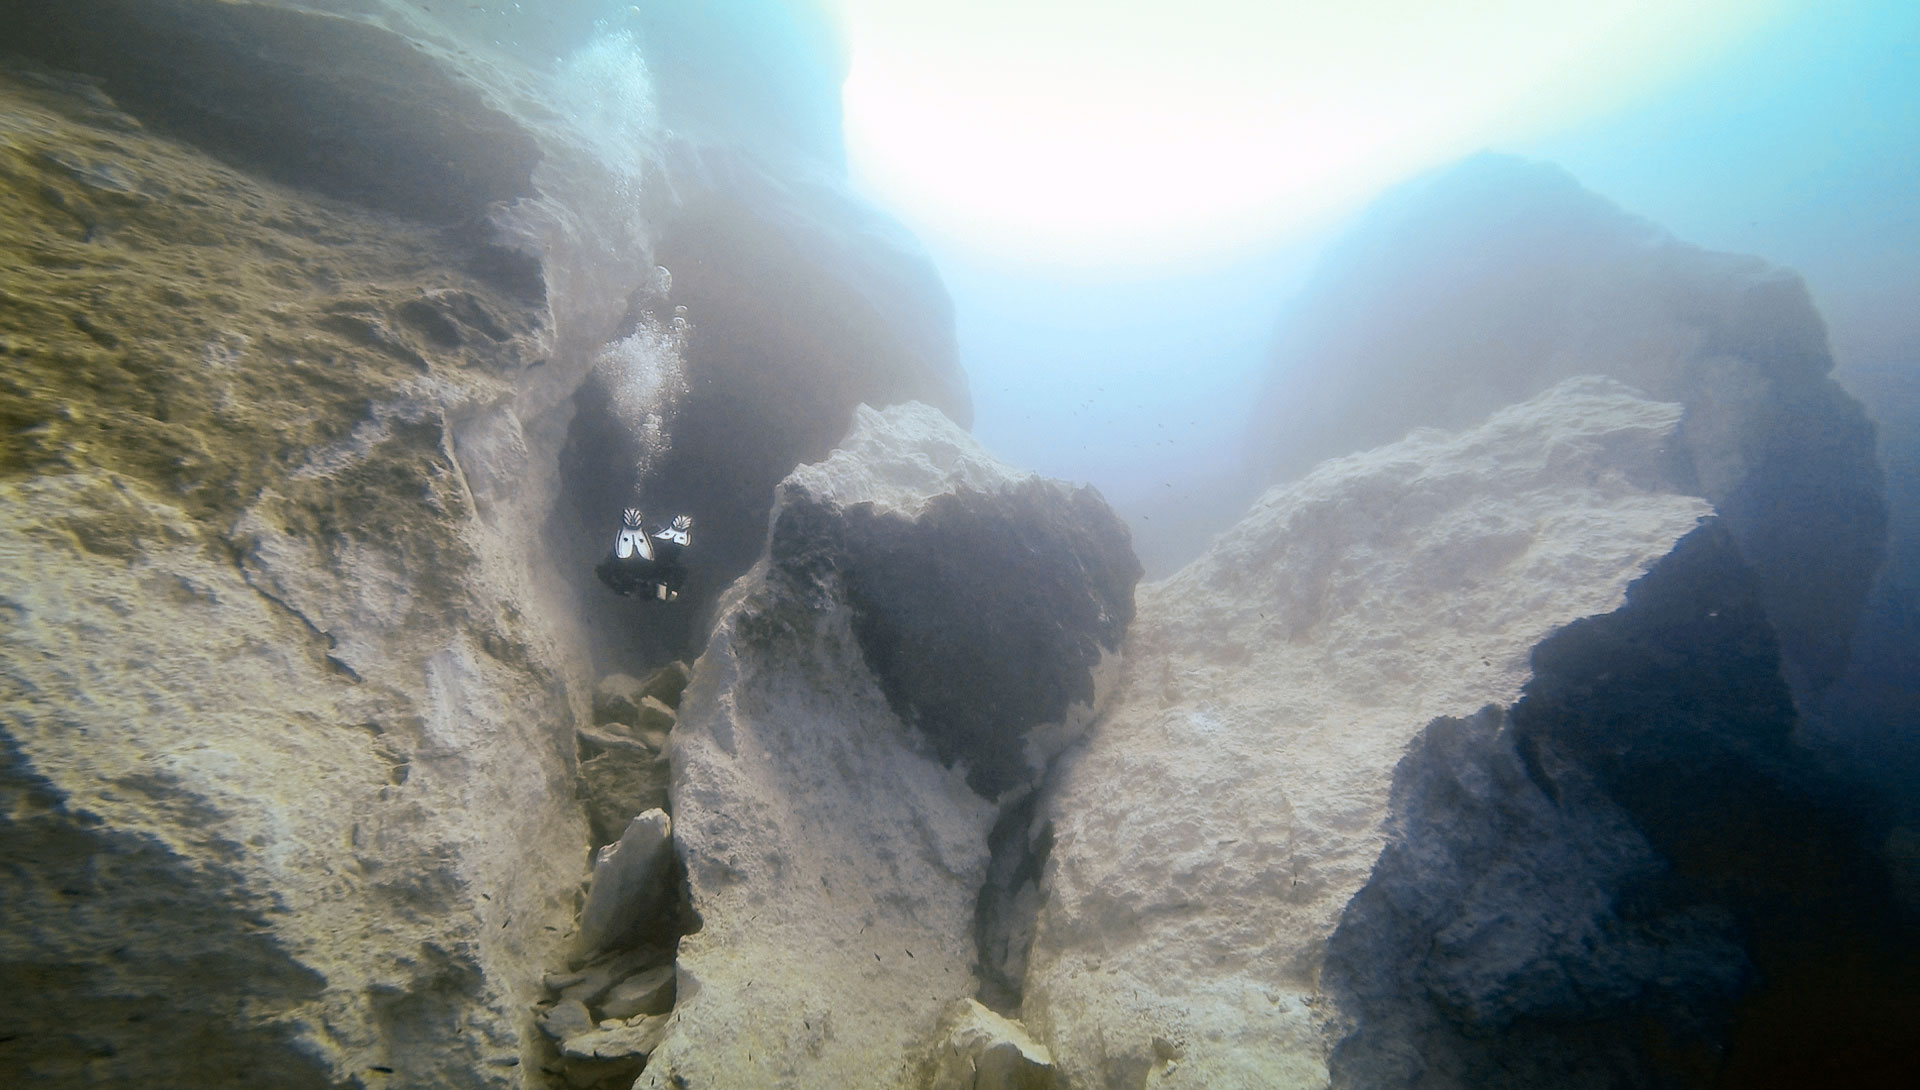 Diver between the huge boulders